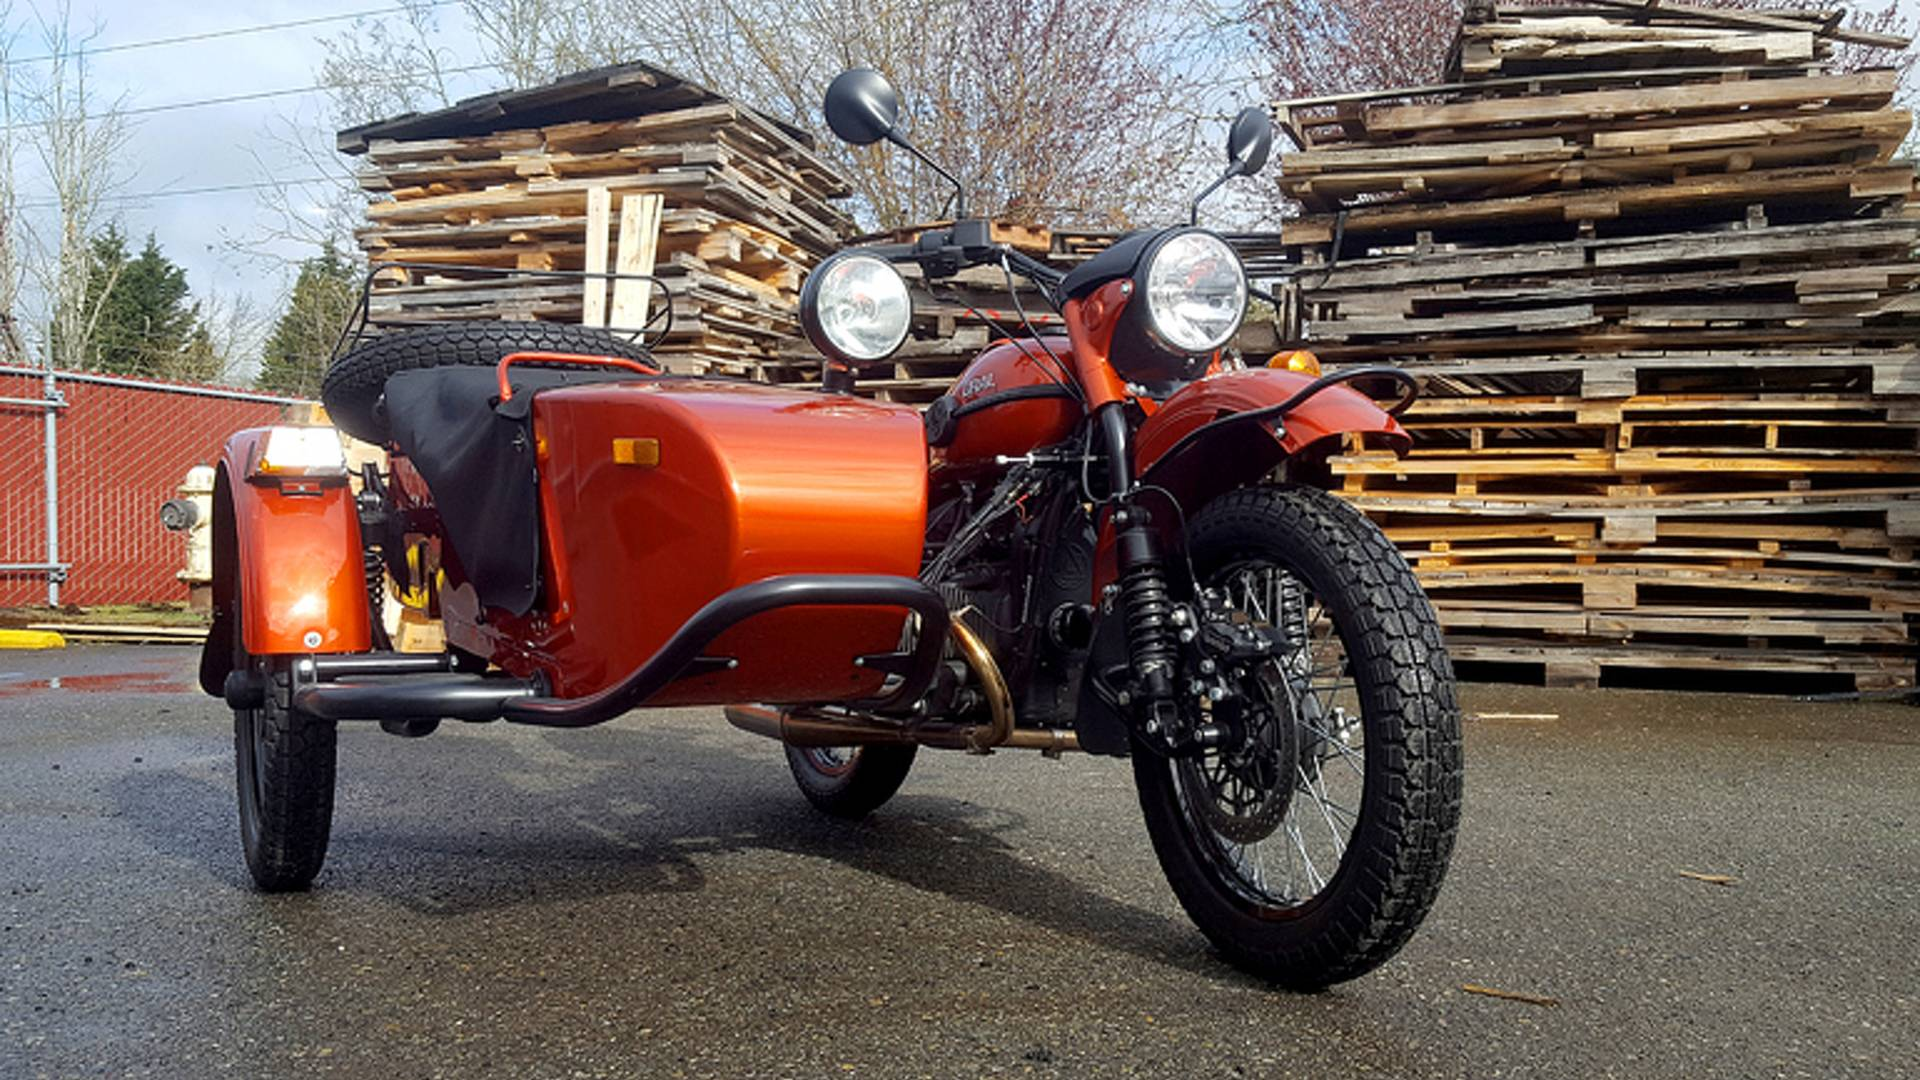 Twenty-Four Hours in Seattle with a Ural - Part 1